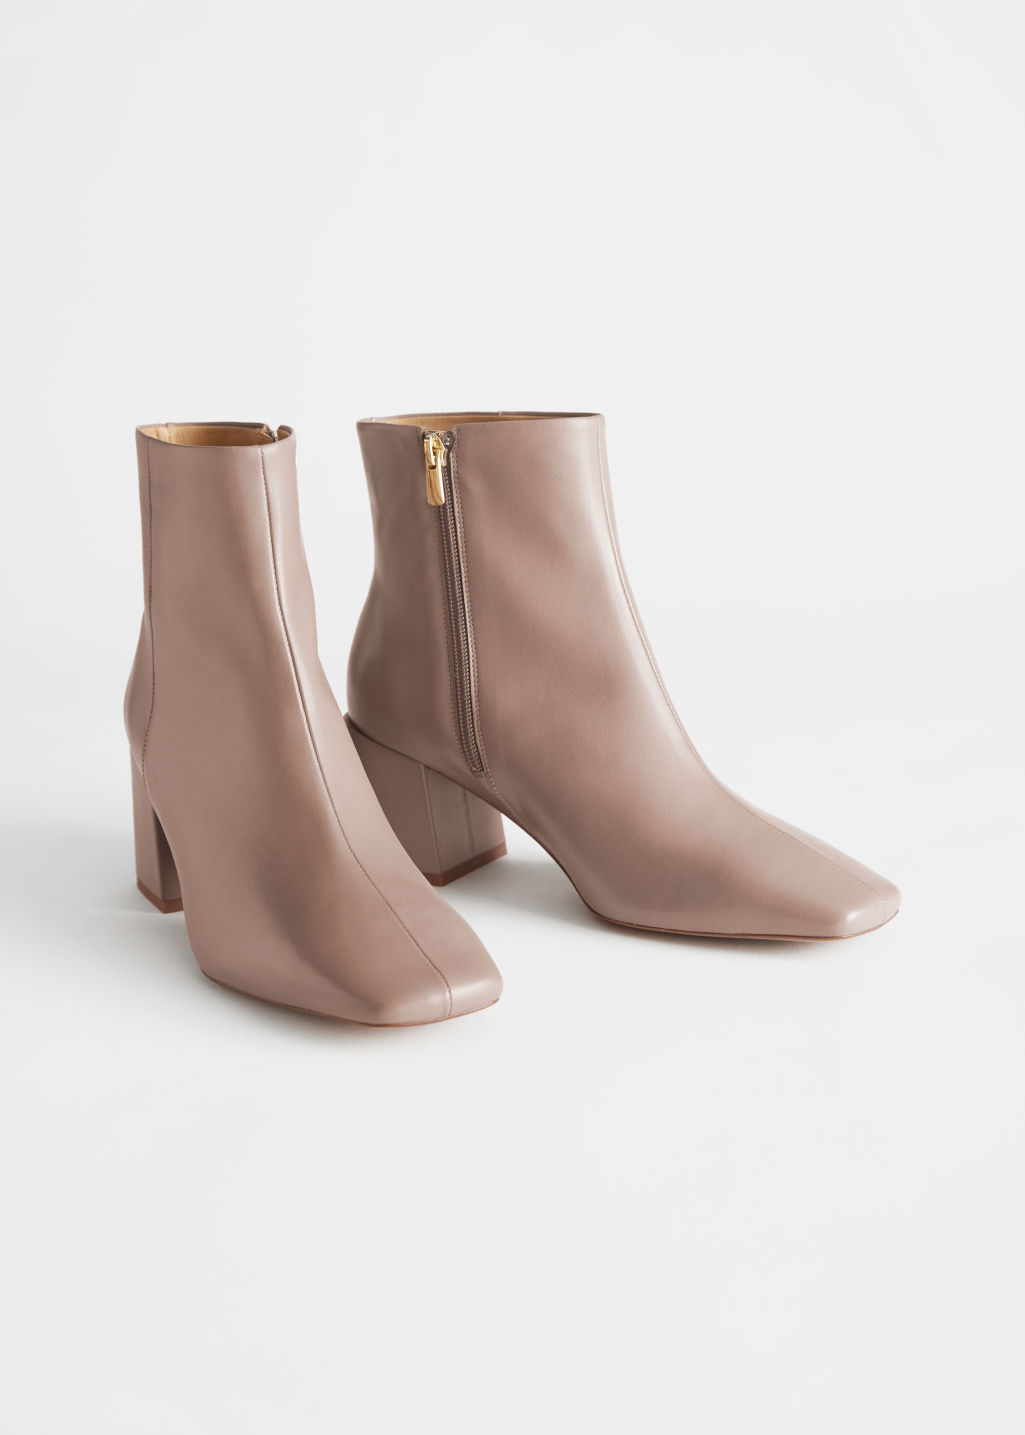 StillLife Front Image of Stories Leather Square Toe Heeled Boots in Beige